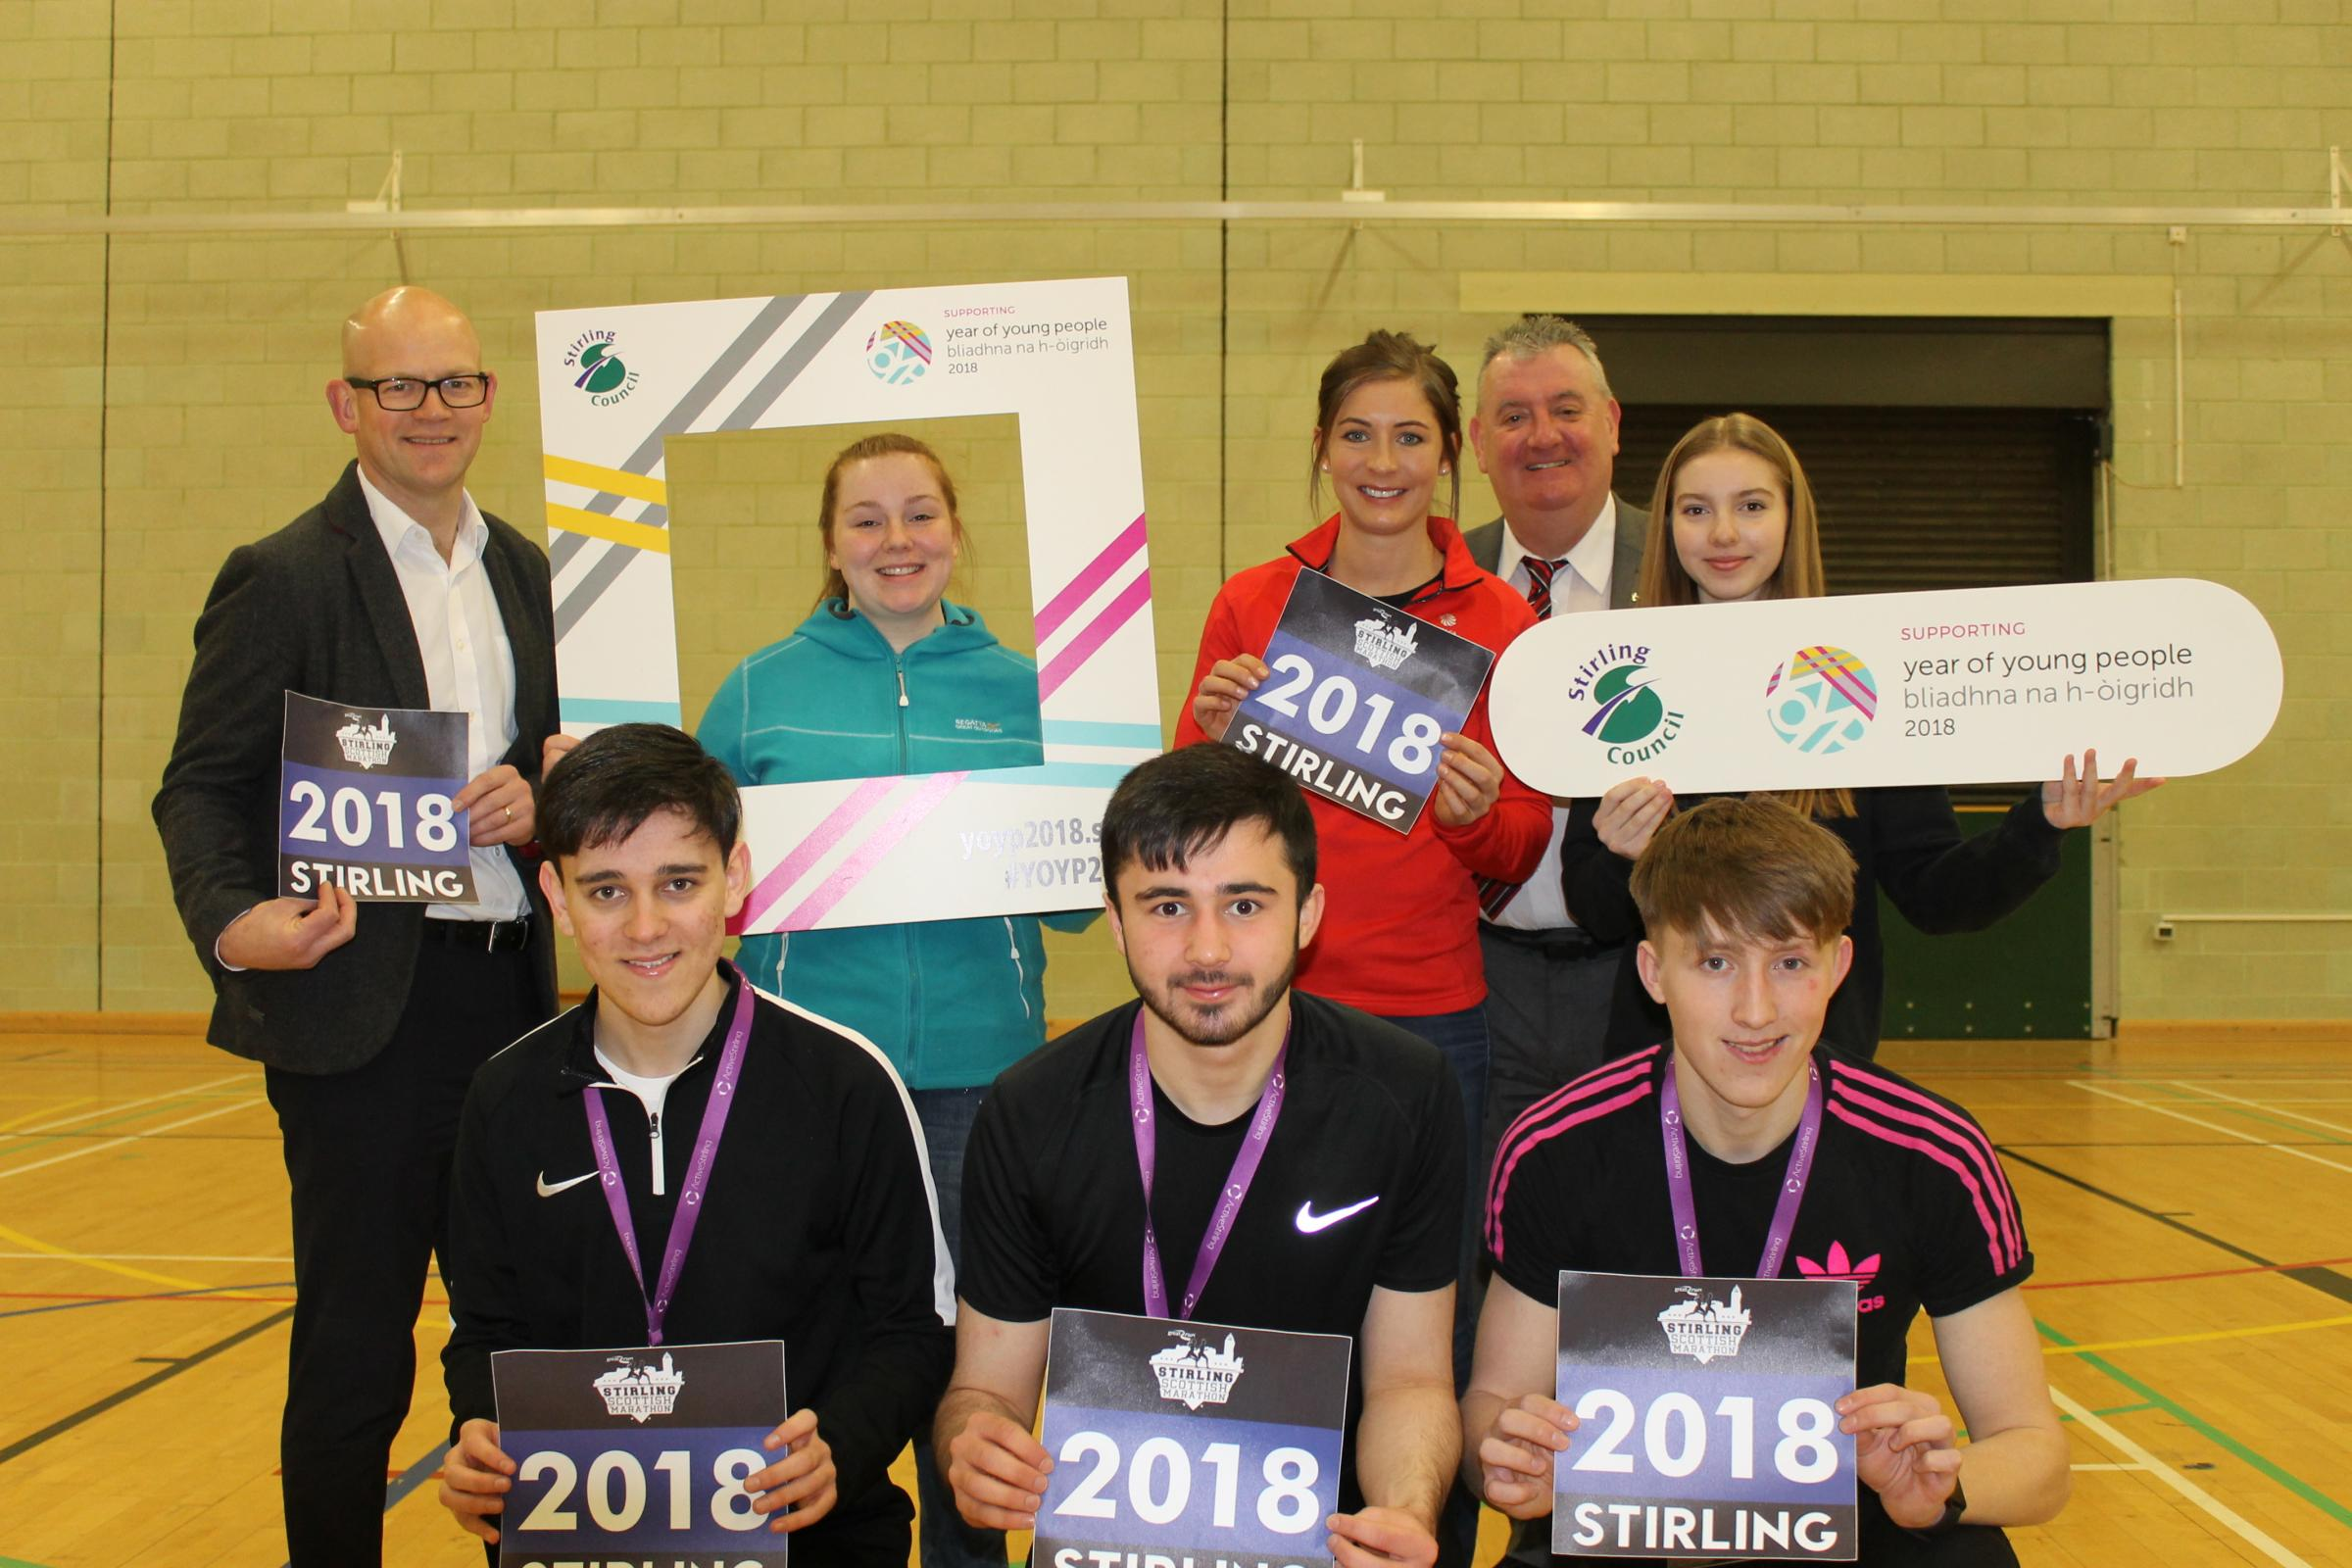 Back row: Chief executive Andrew Bain with young ambassadors Shannon Goundry, Eve Muirhead and Cameryn Dick as well as Councillor Scott FarmerFront row: Kristoffer Hunter, Martin Sandà and Daniel Addison – all Active Stirling volunteers